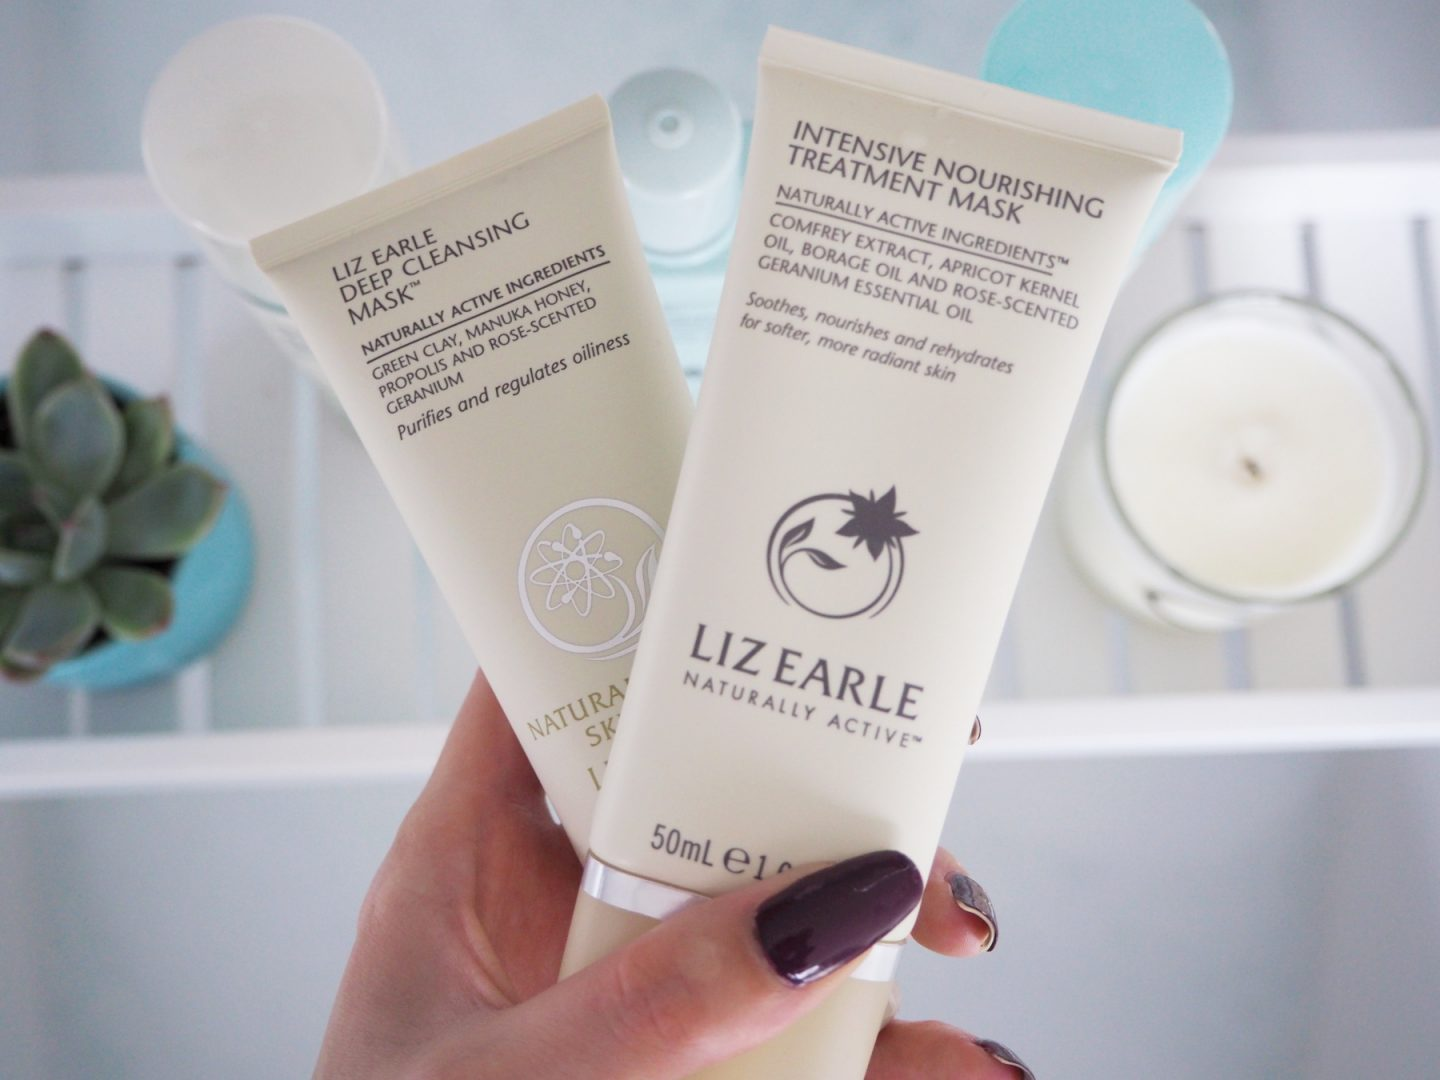 A Liz Earle Review -deep cleansing mask & intensive nourishing treatment mask